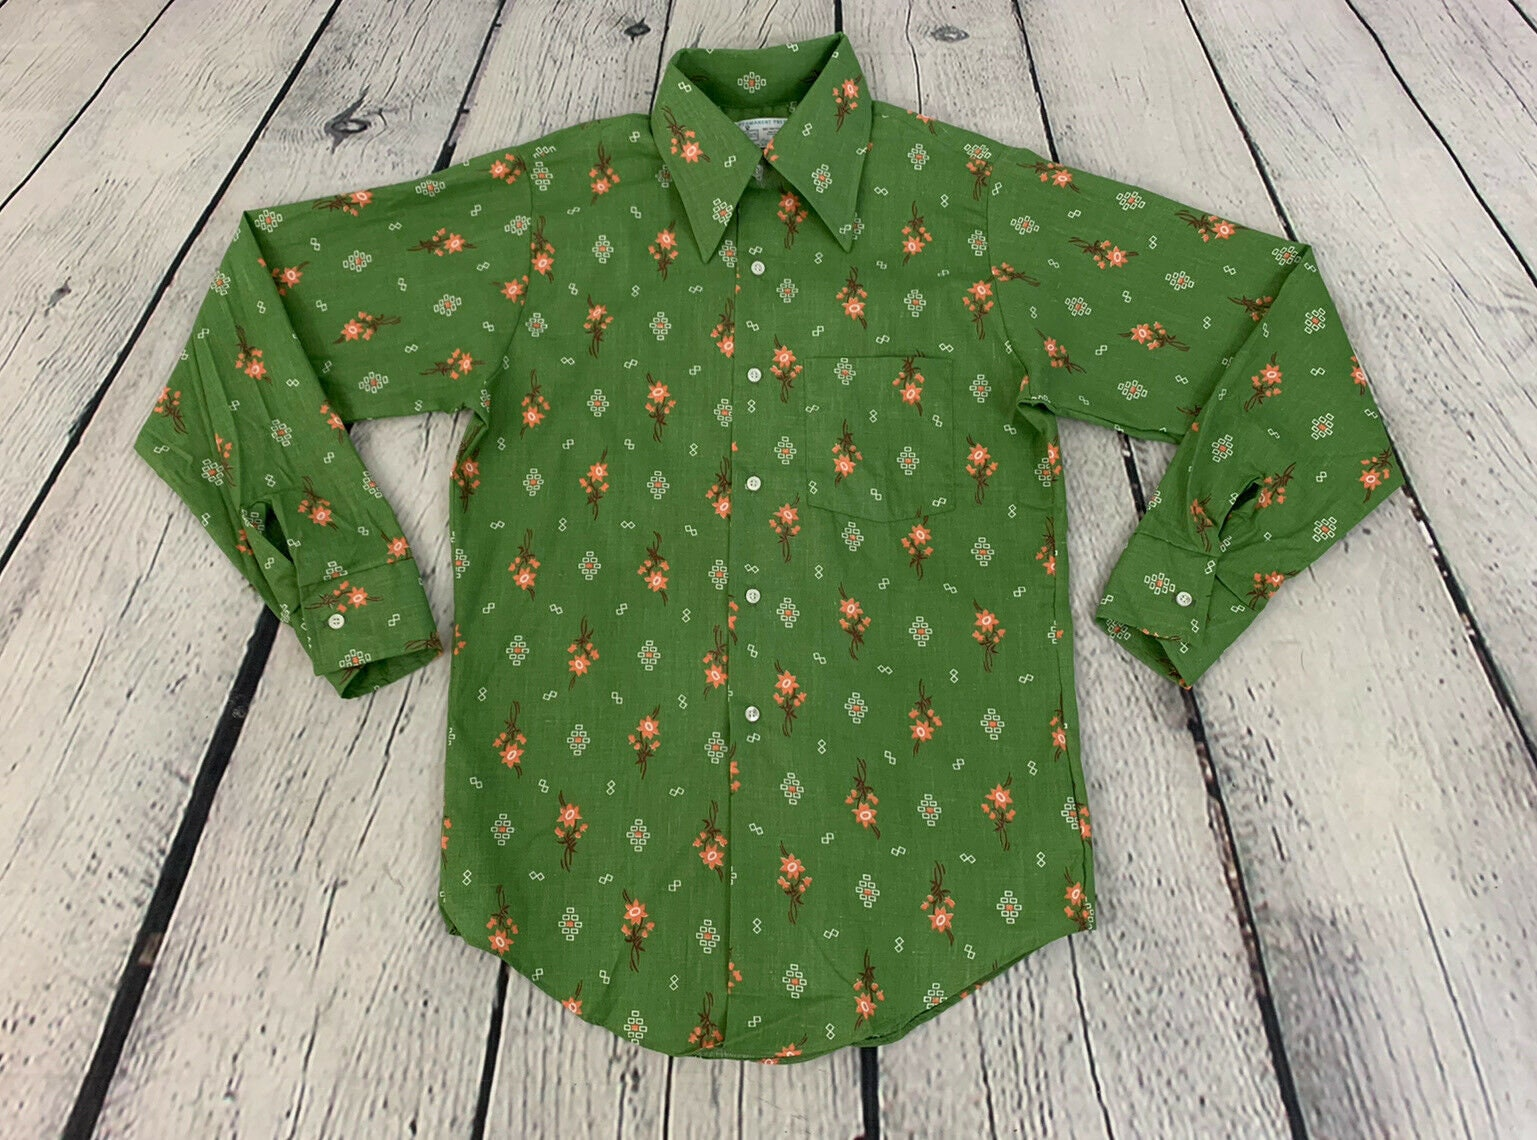 1970s Mens Shirt Styles – Vintage 70s Shirts for Guys 1970S Vintage Deadstock Mens Green Multi Color Floral Abstract Pattern Button Front Long Sleeve Dress Shirt Size 14 14.5 $0.00 AT vintagedancer.com